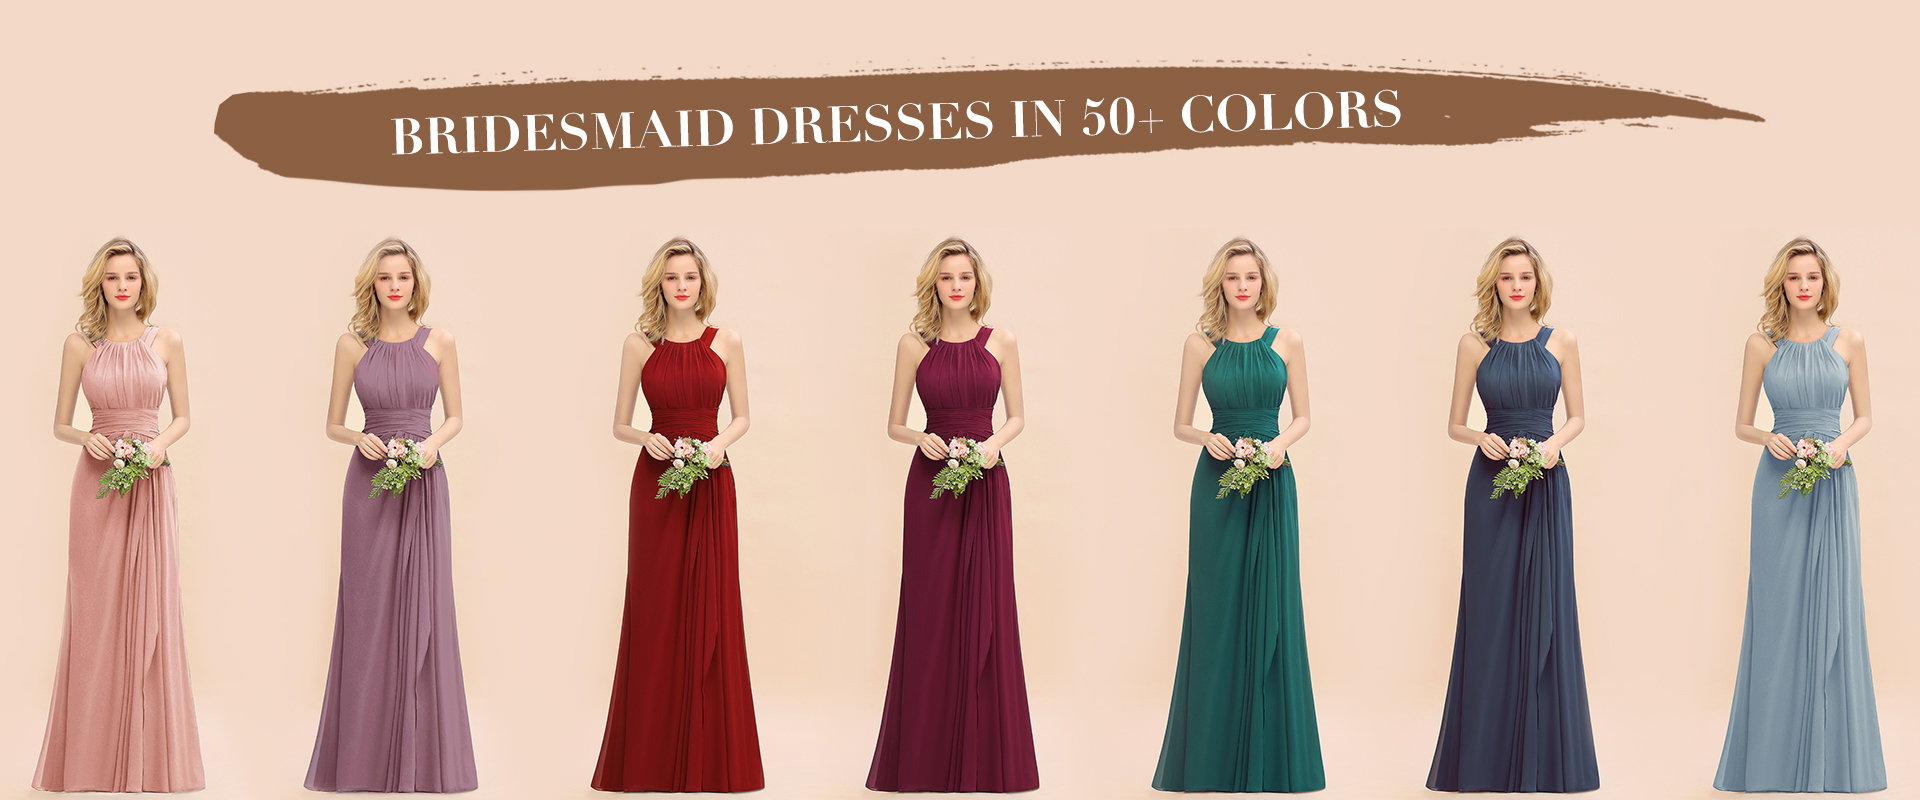 50+ colors bridesmaid dresses